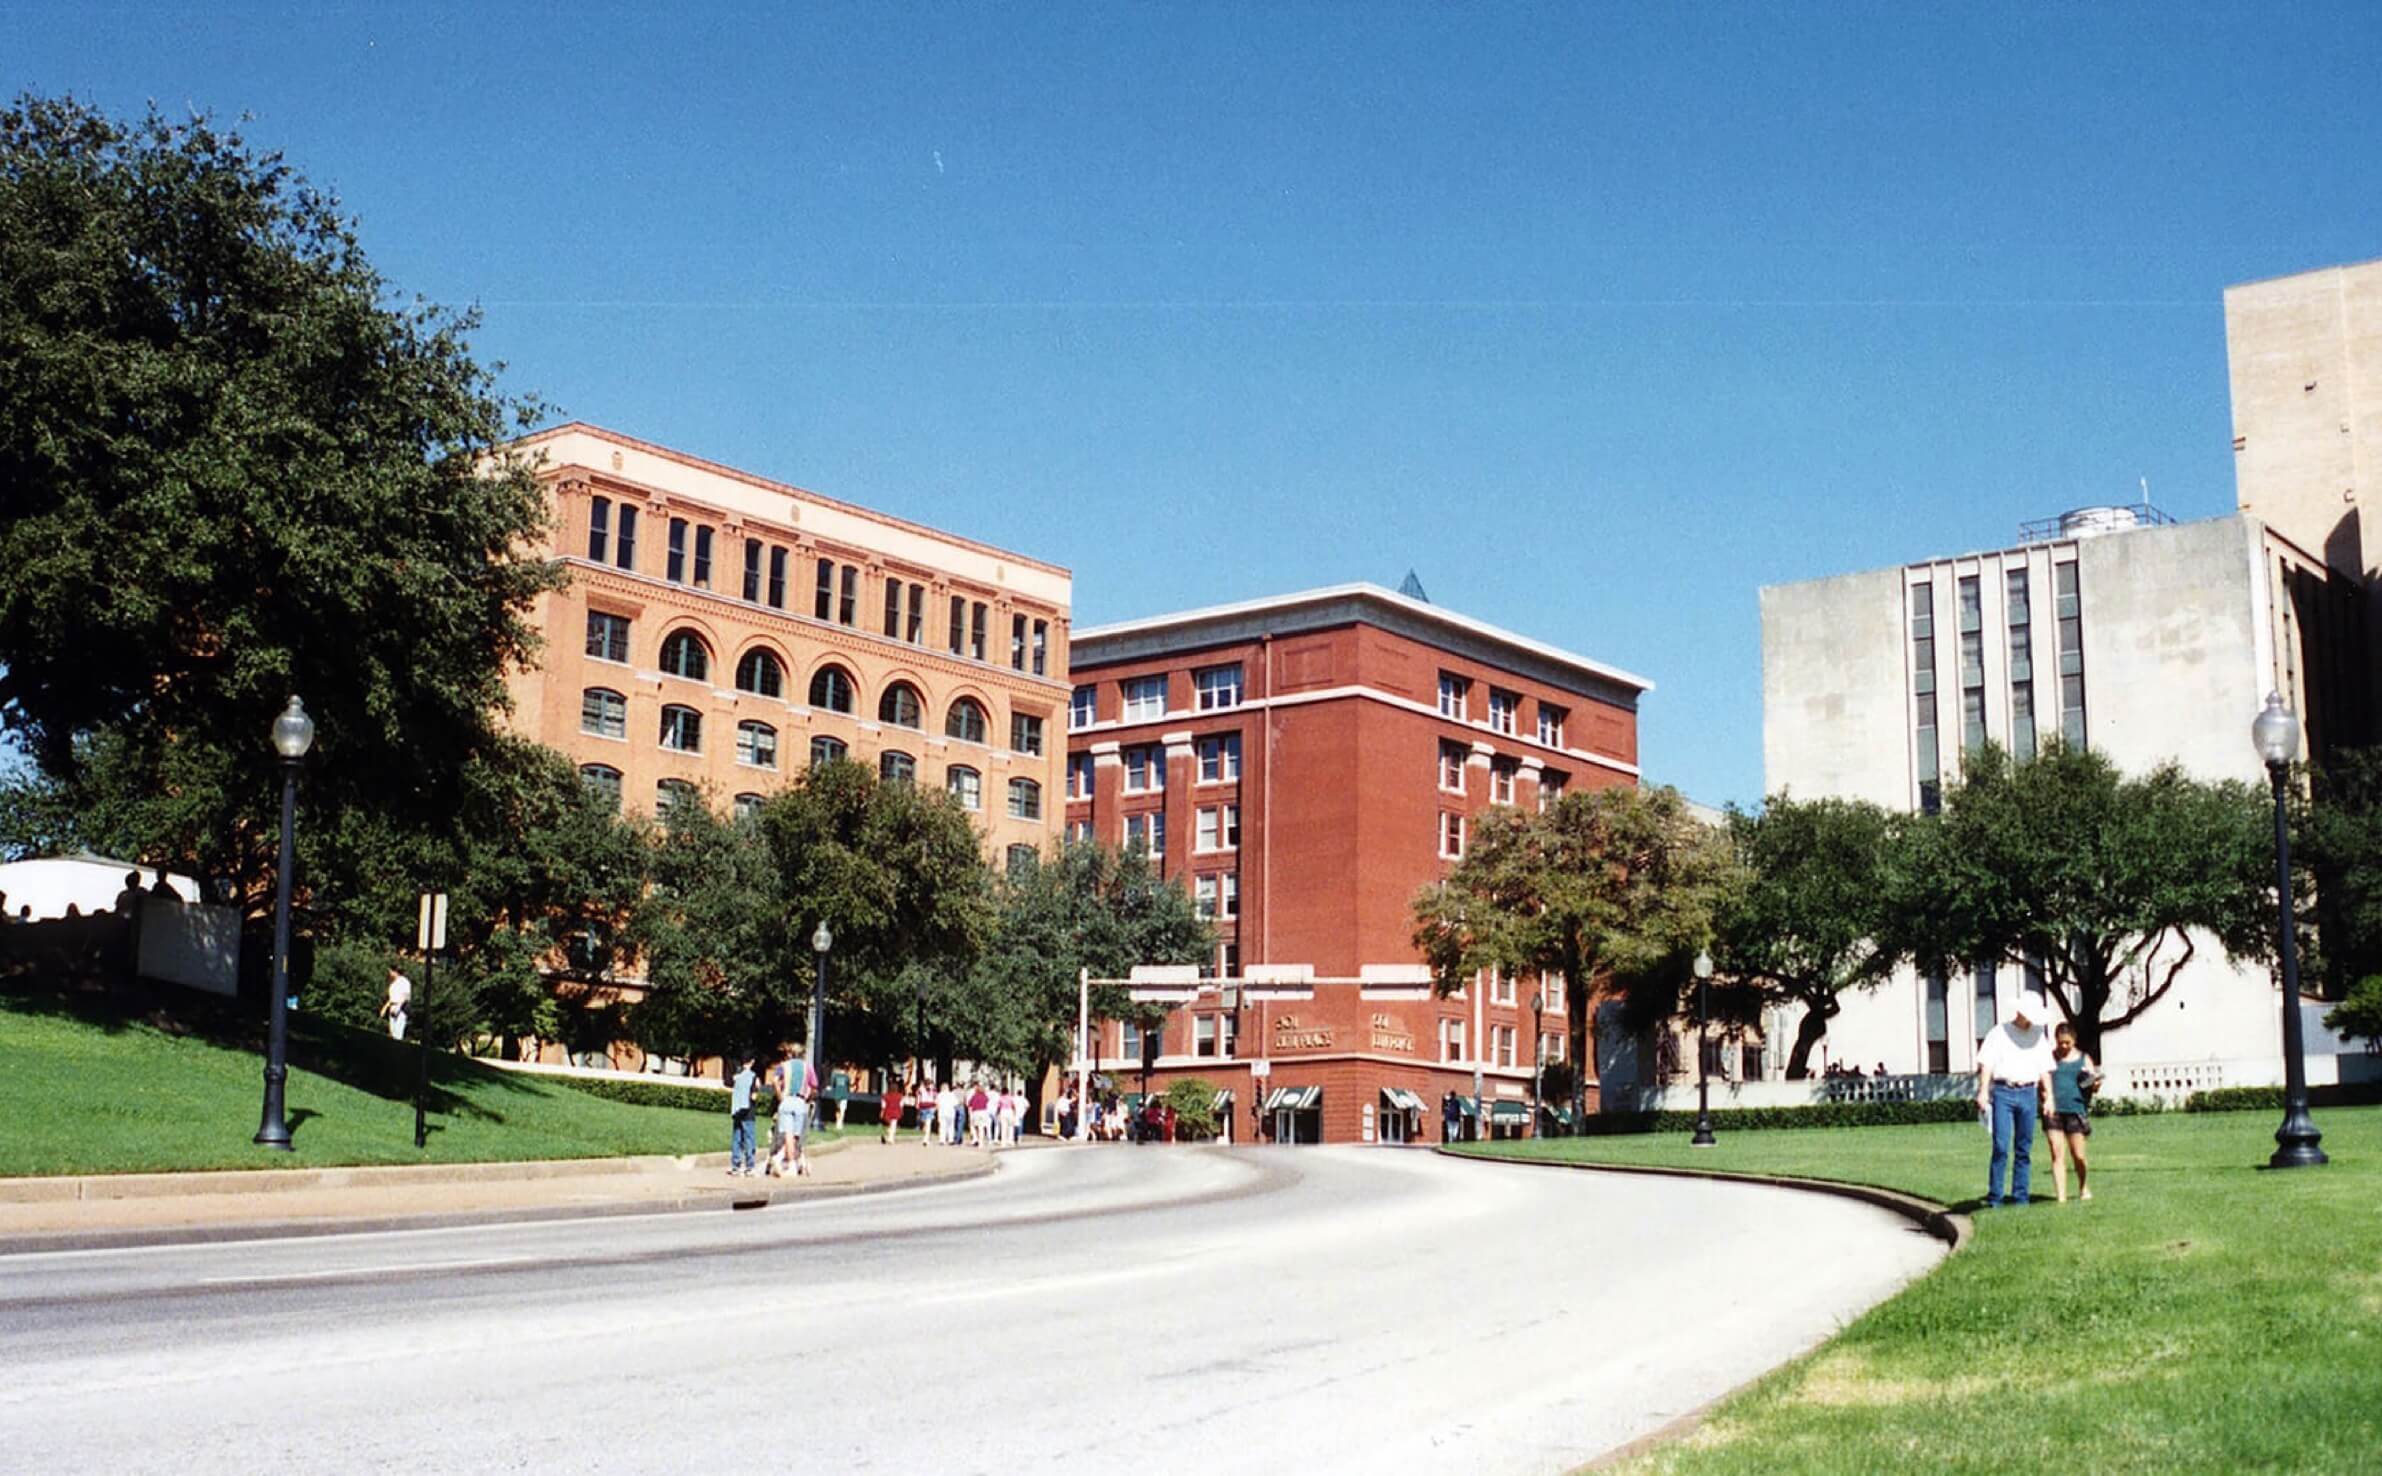 People walking along sidewalk in Dealey Plaza